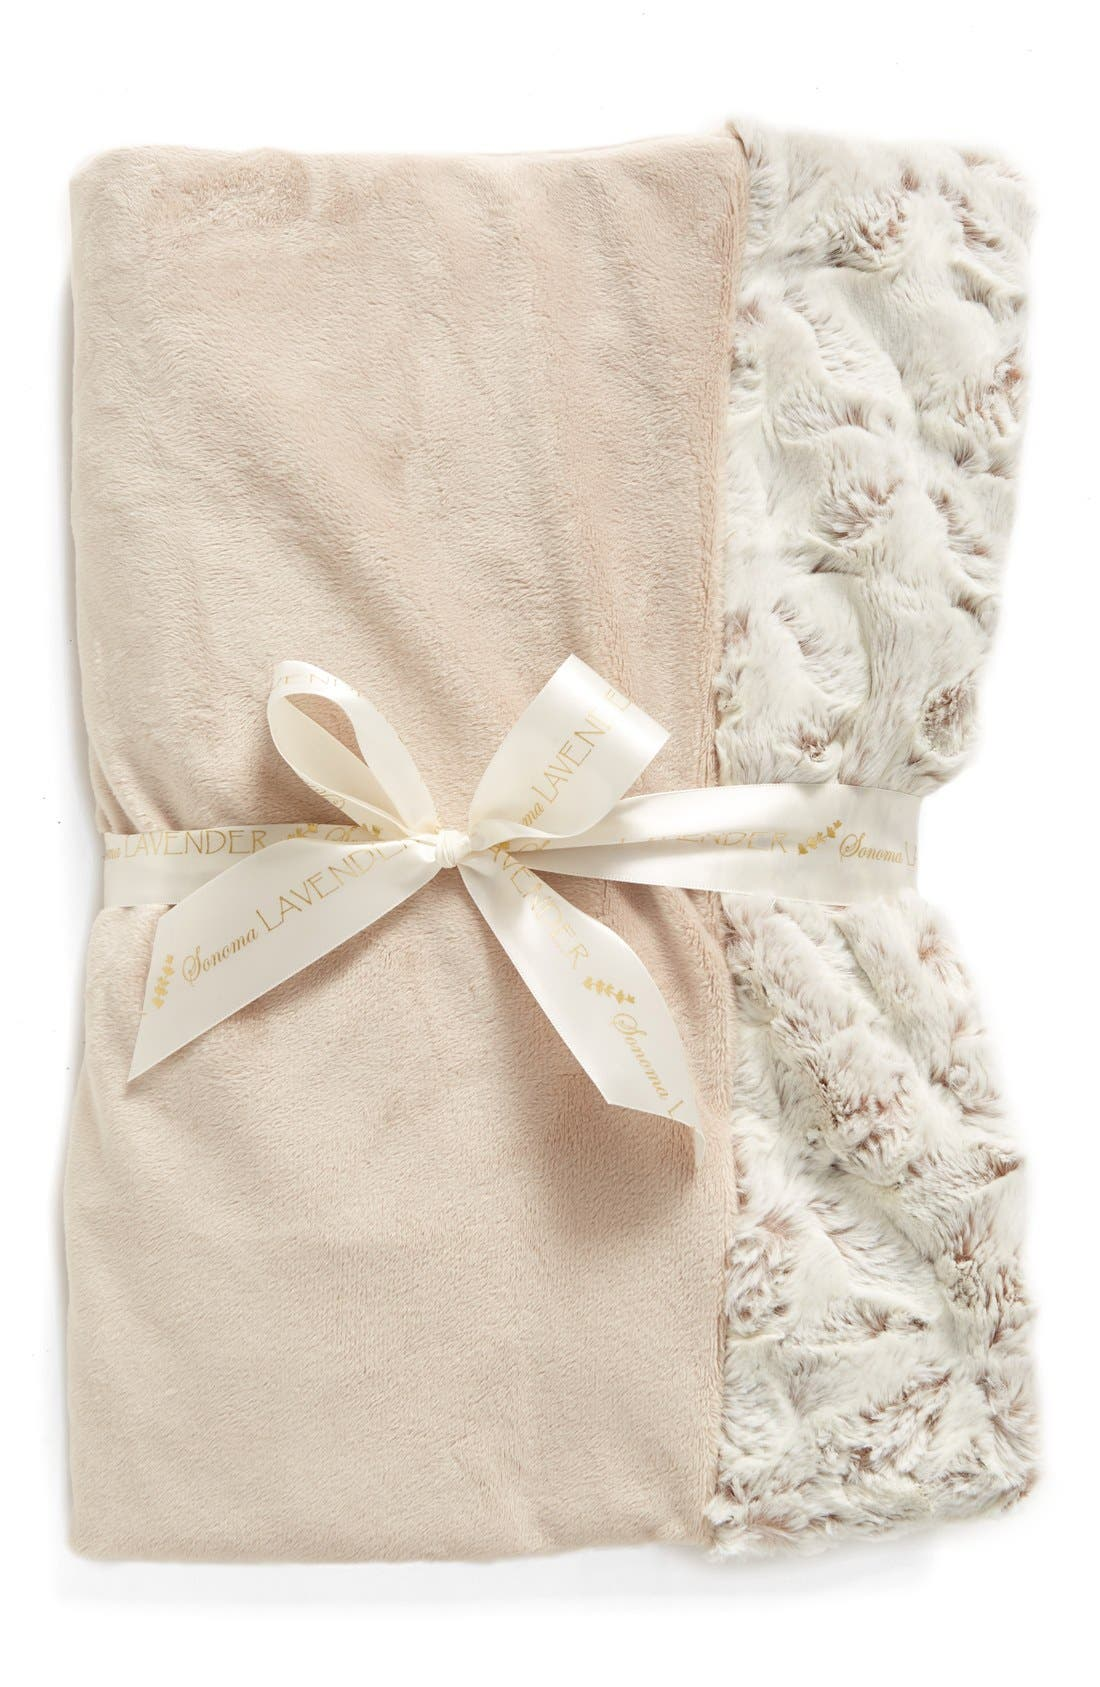 Main Image - Sonoma Lavender Taupe Luxe Blankie (Limited Edition) (Nordstrom Exclusive)